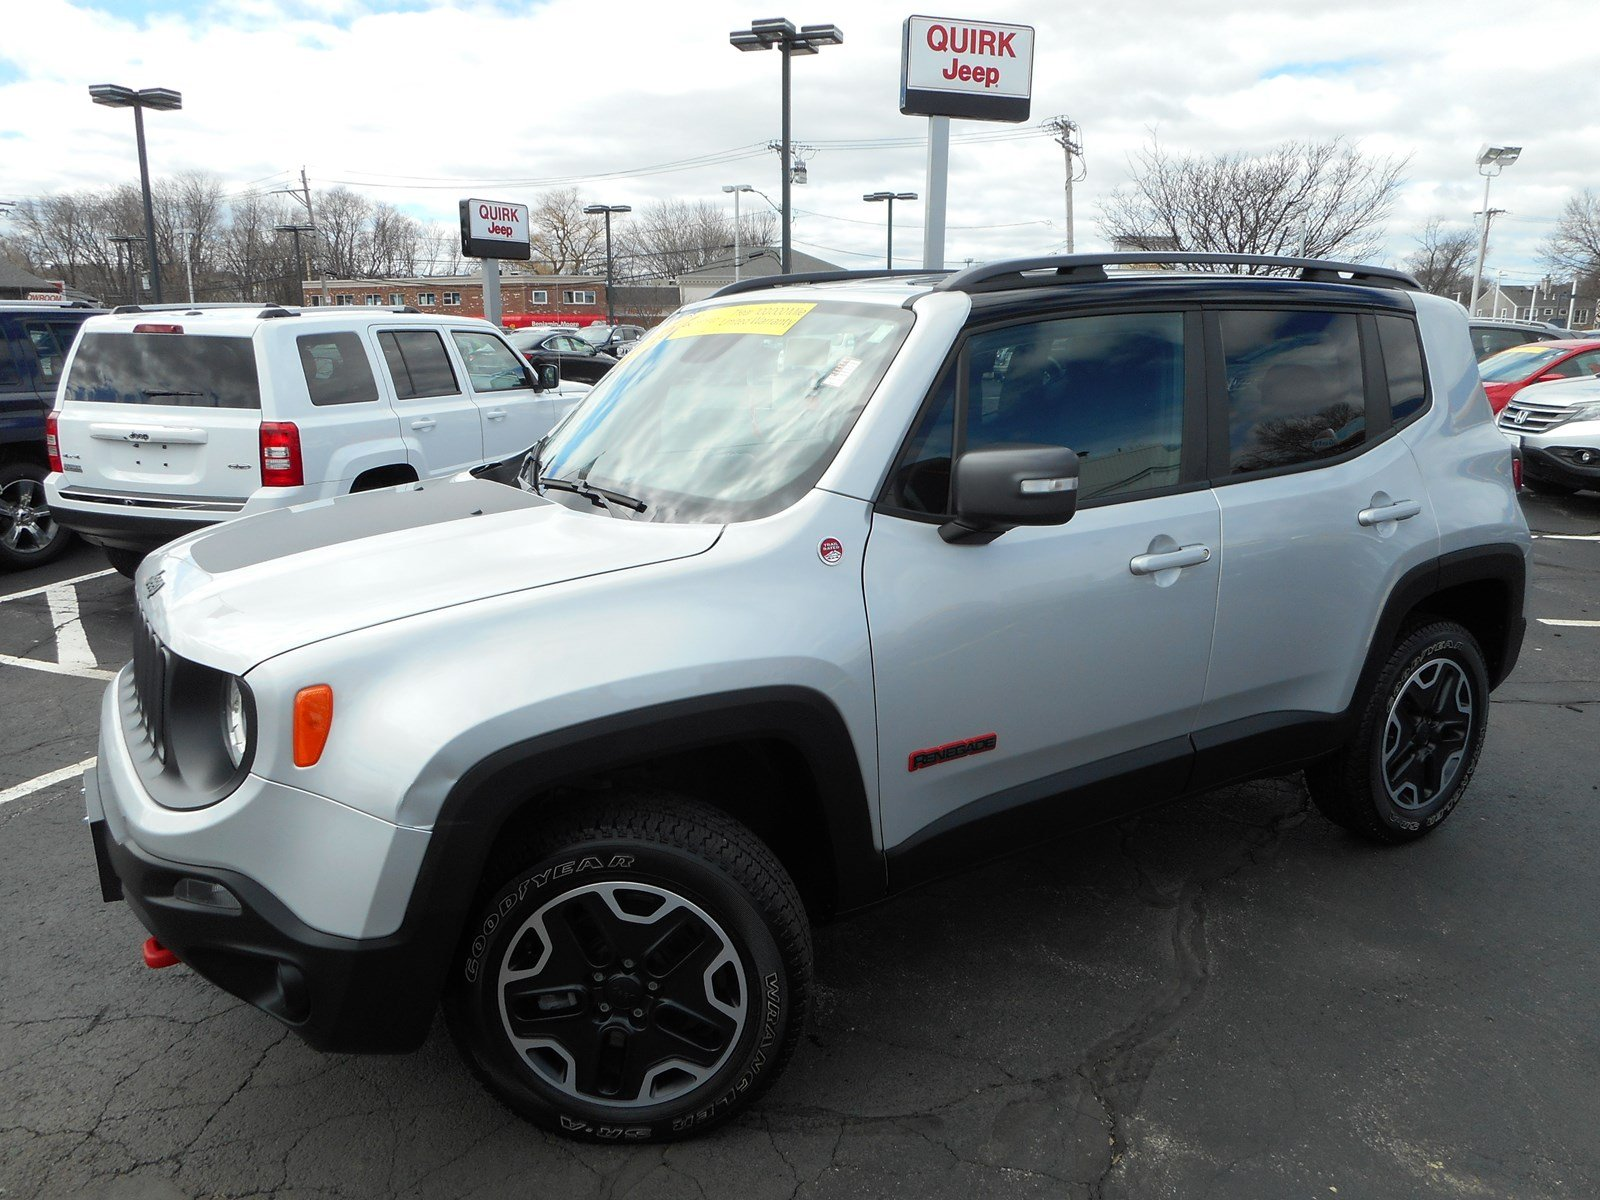 certified pre owned 2015 jeep renegade trailhawk sport utility in boston j14094a quirk jeep. Black Bedroom Furniture Sets. Home Design Ideas